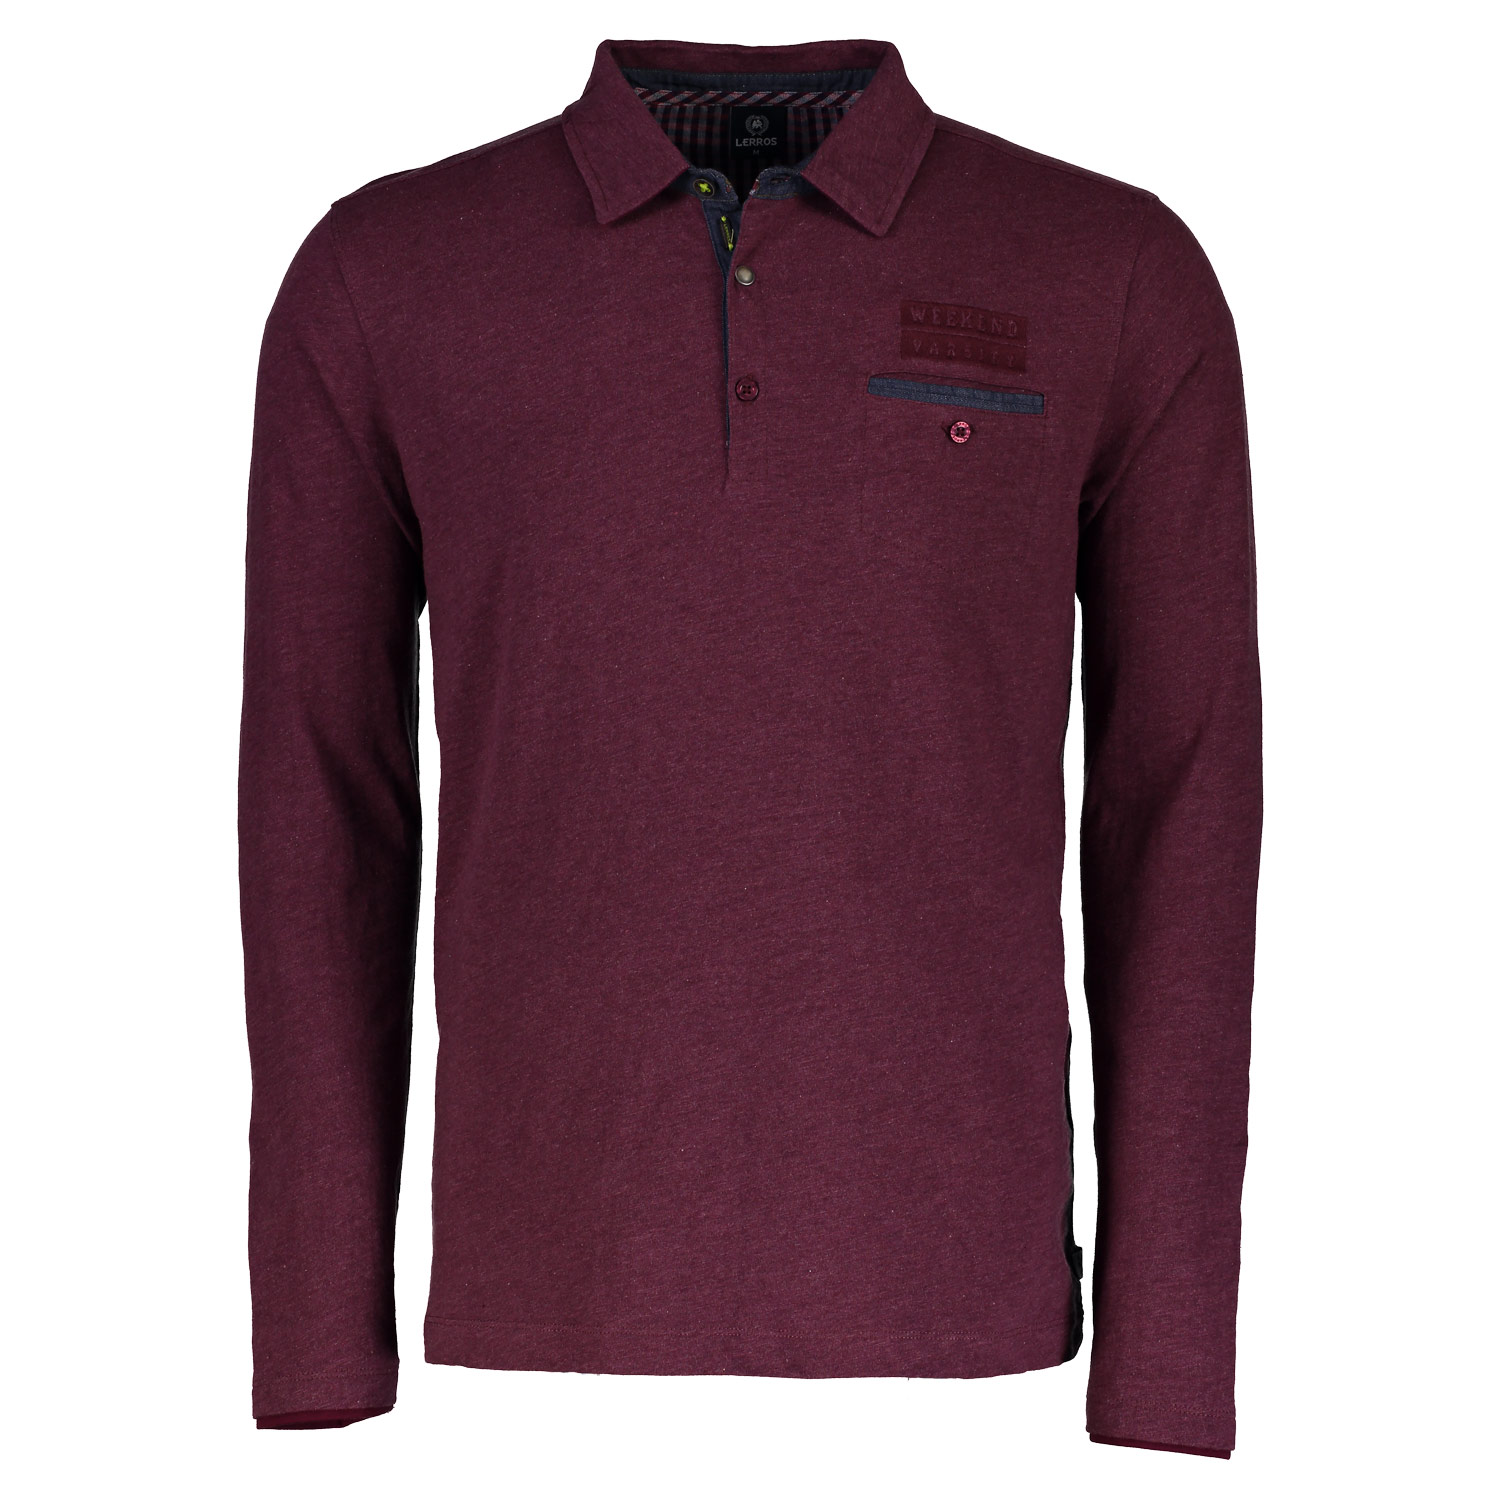 colorpic-WINE RED